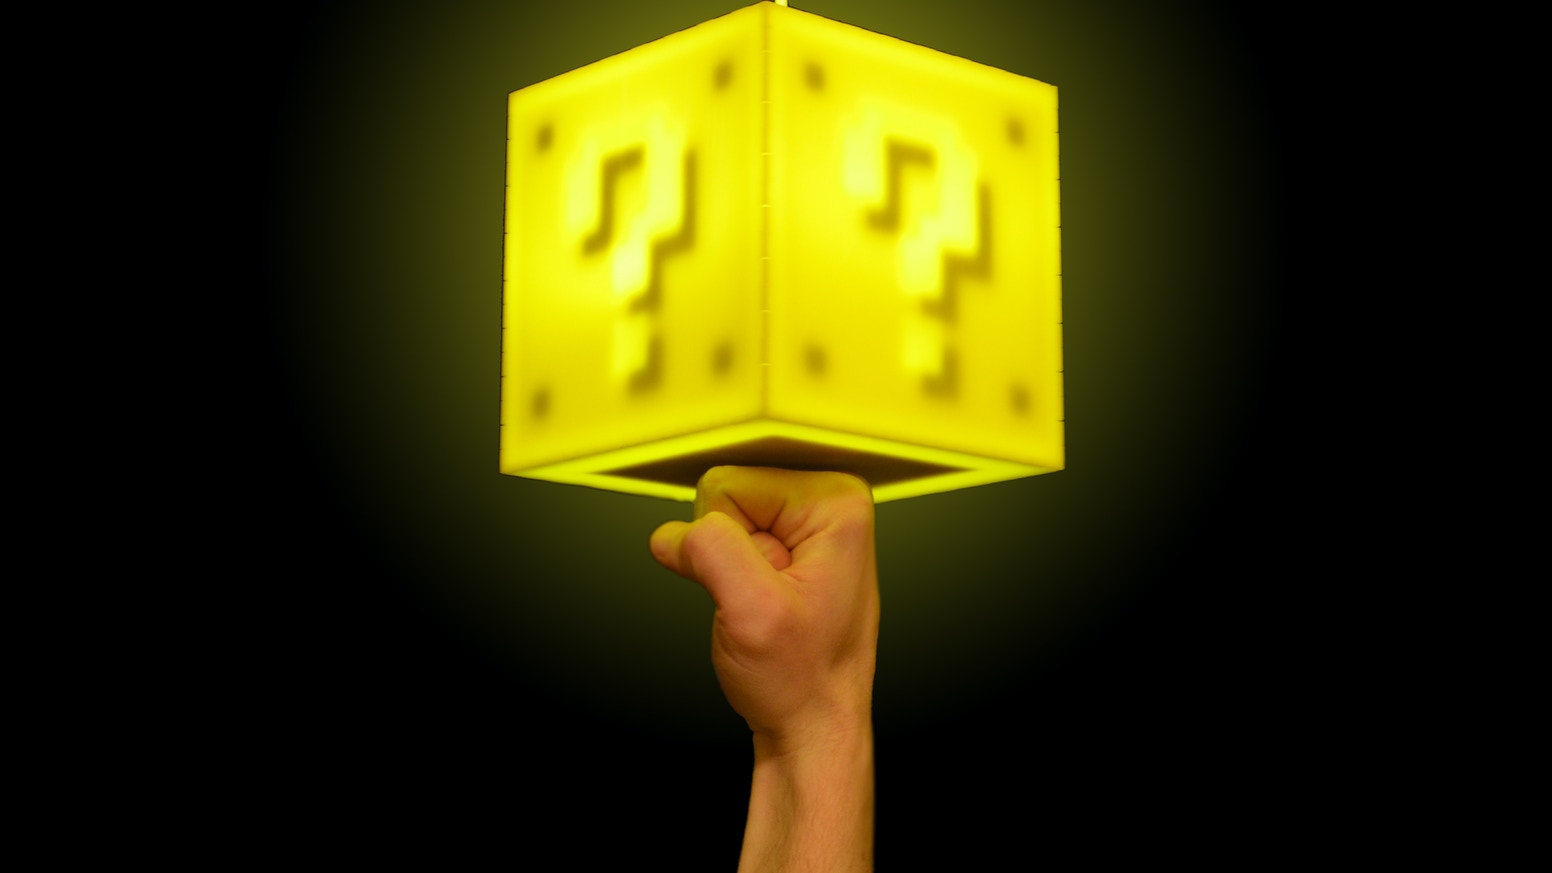 The Question Block Lamp By 8 Bit Lit Kickstarter Circuit Board Picture Frame Geek Armory Videogame Inspired Interactive For Your Inner Gamer And Child